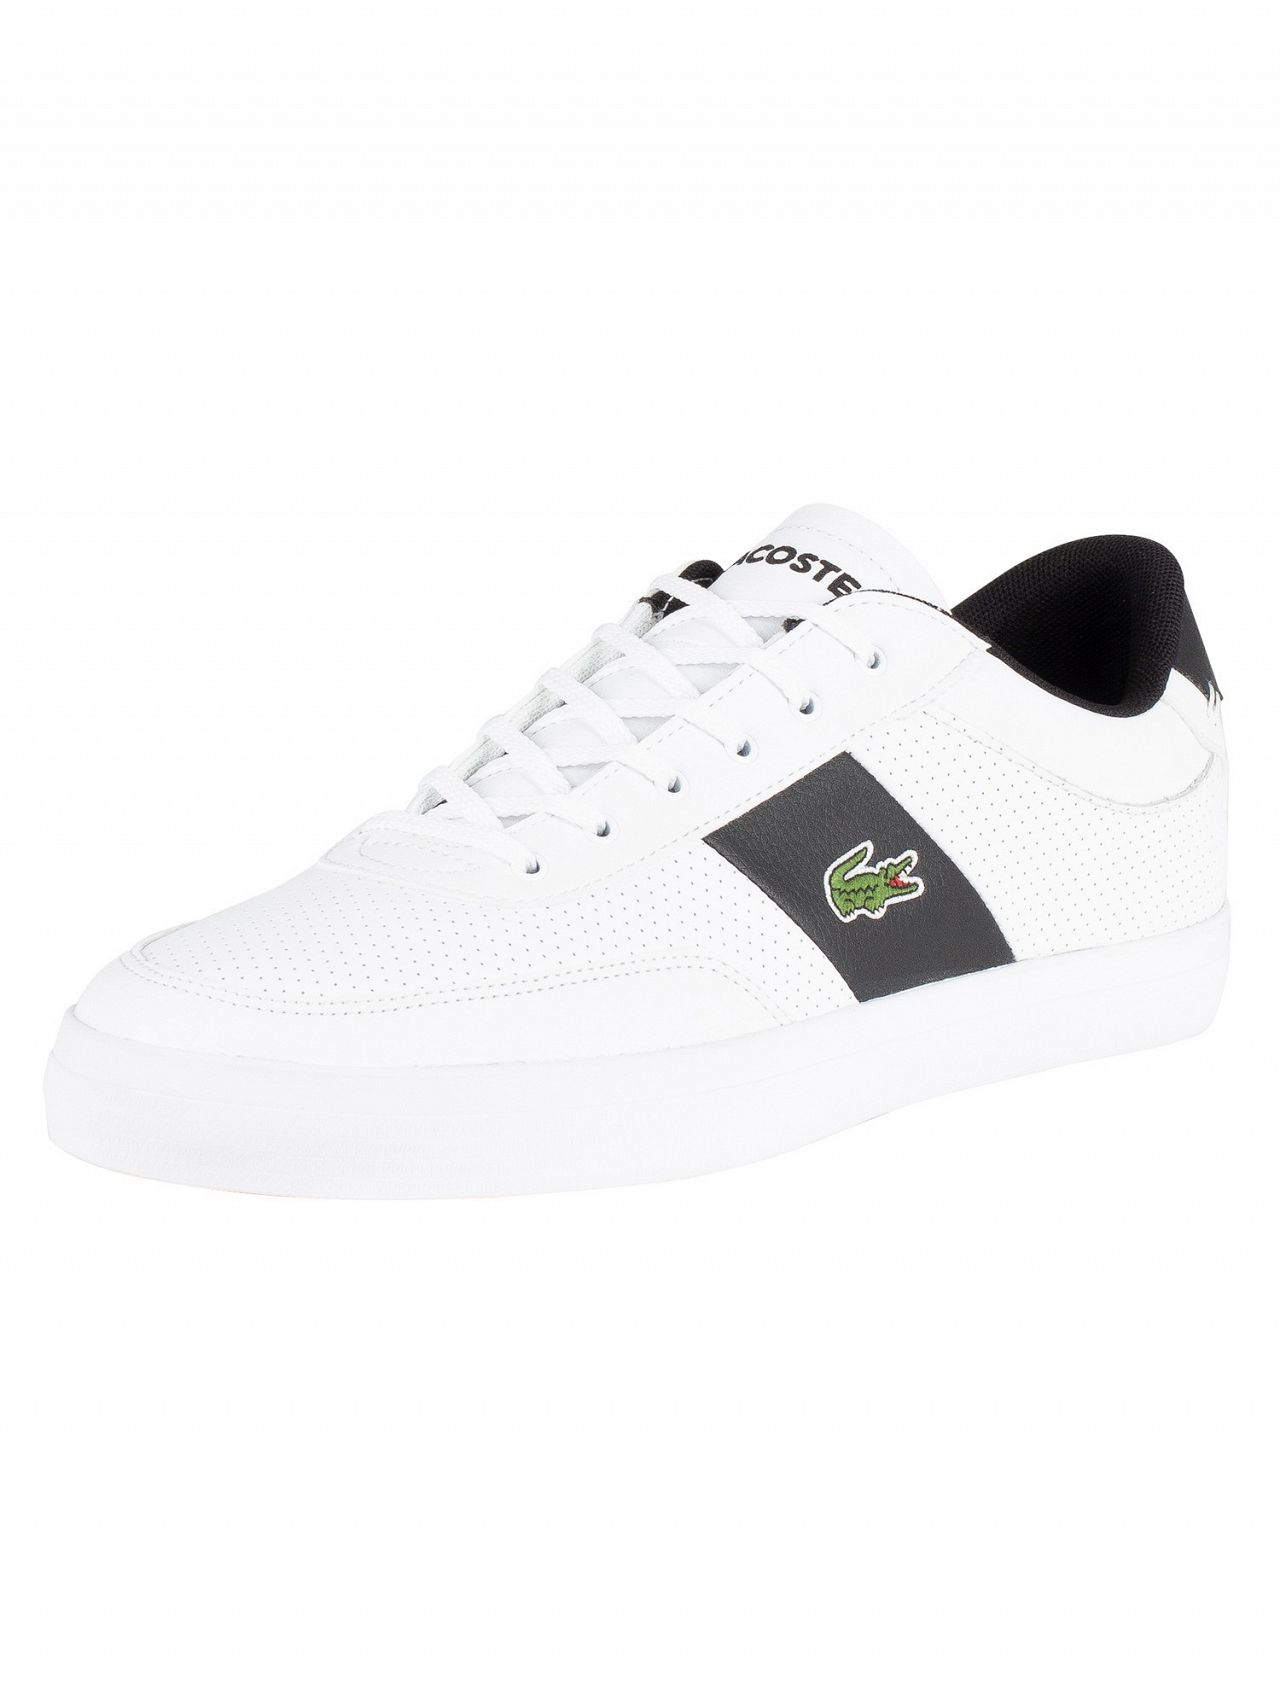 0a10a7f69 Lacoste White Black Court-Master 119 2 Leather Trainers